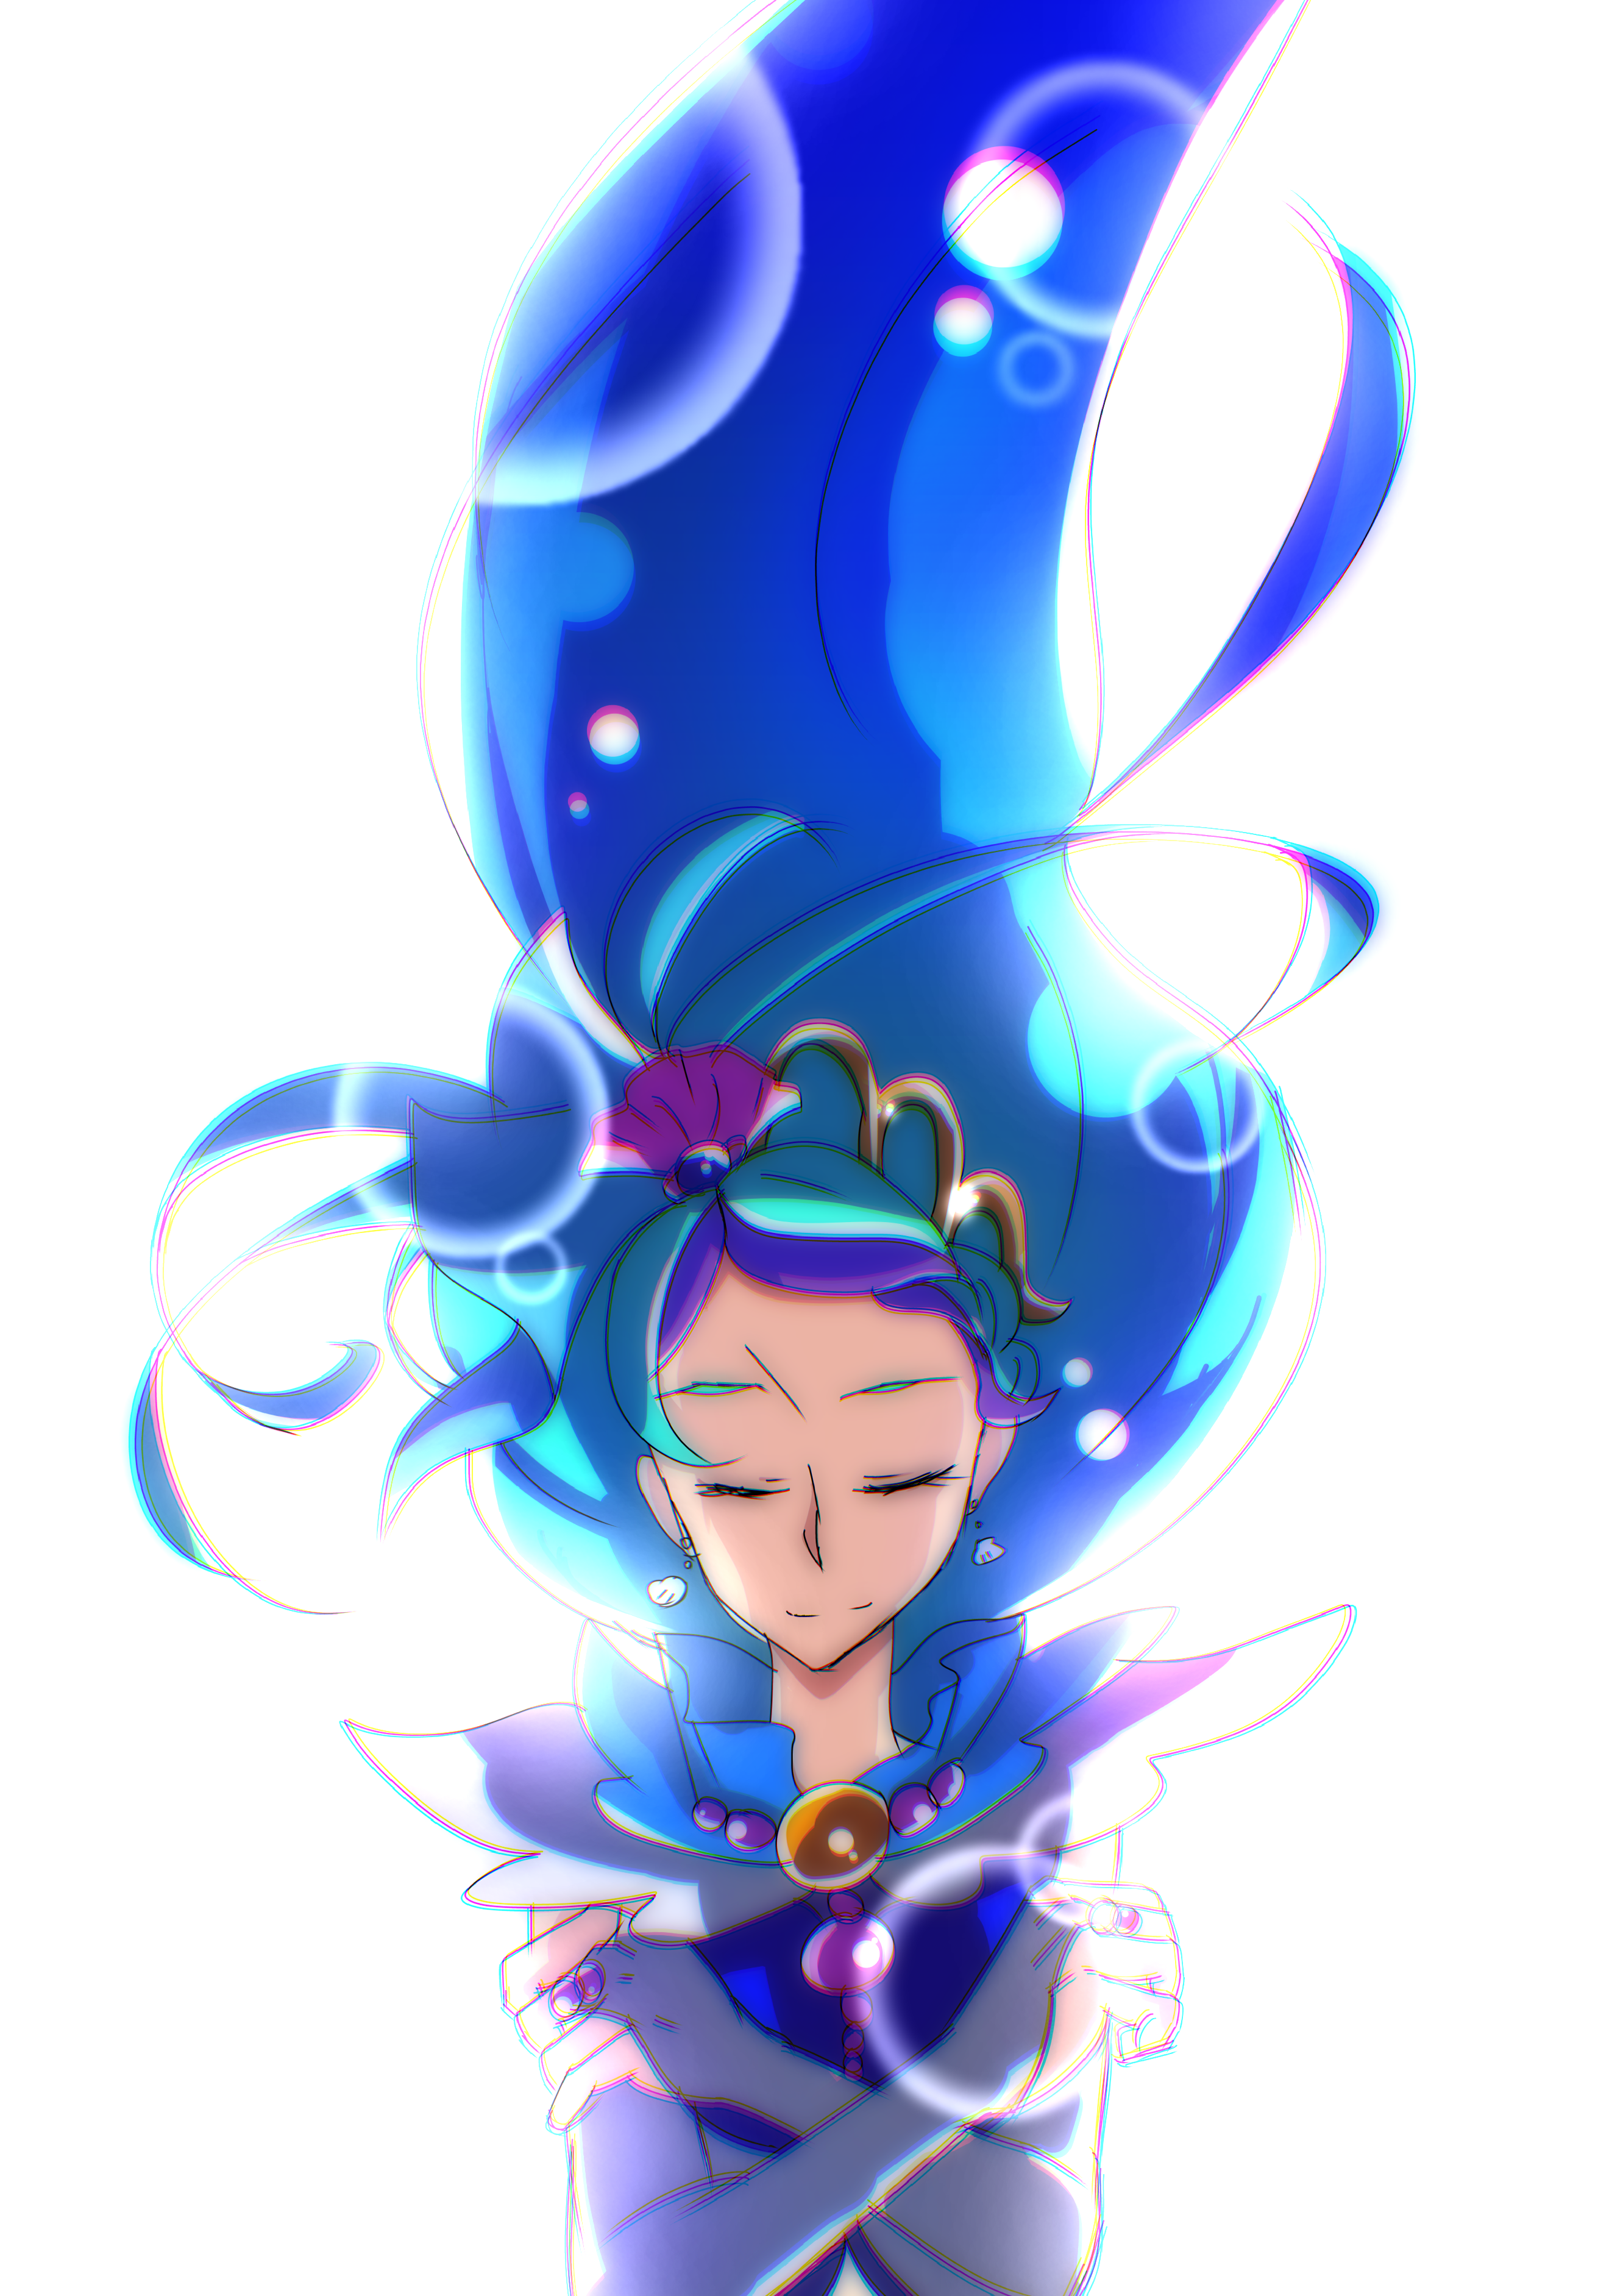 Pin by Joud on Precure (With images) Anime, Character